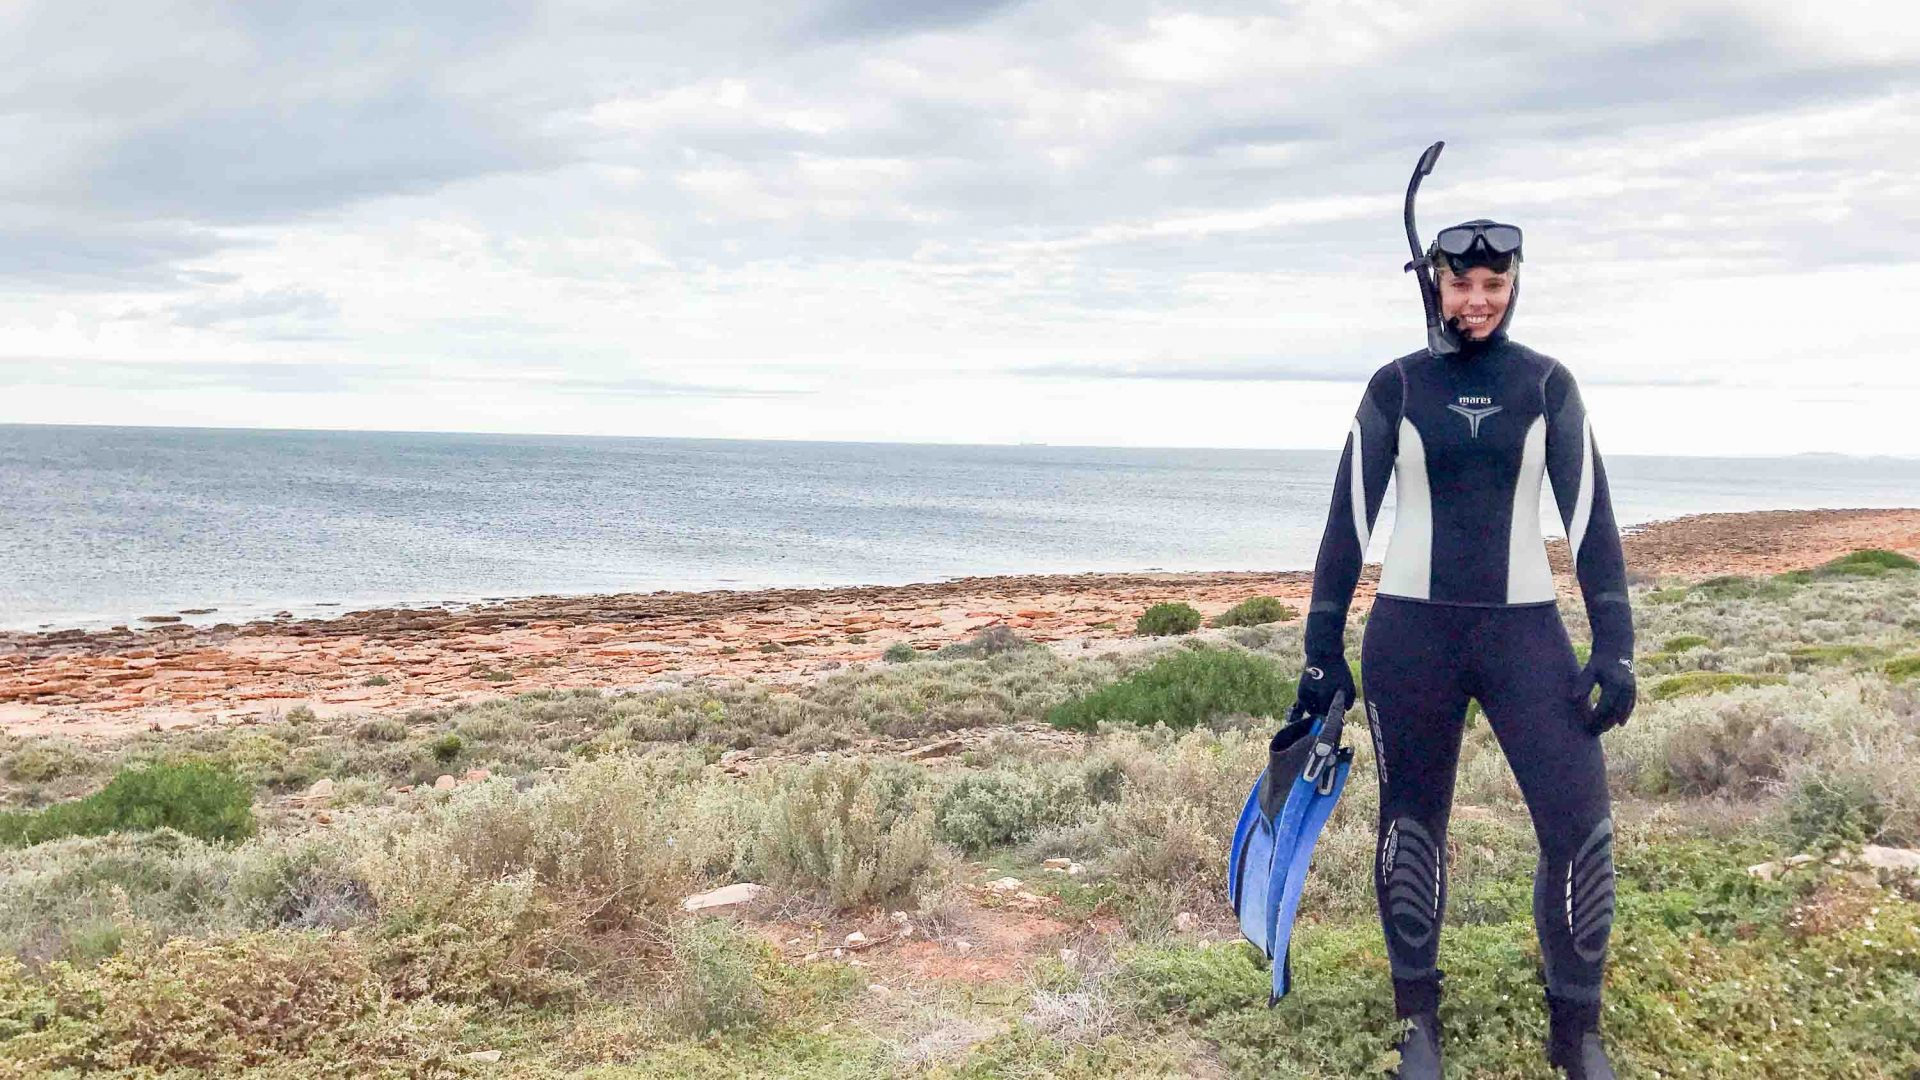 Sarah Reid, about to snorkel with the cuttlefish at information boards in the Upper Spencer Gulf Marine Park in South Australia.